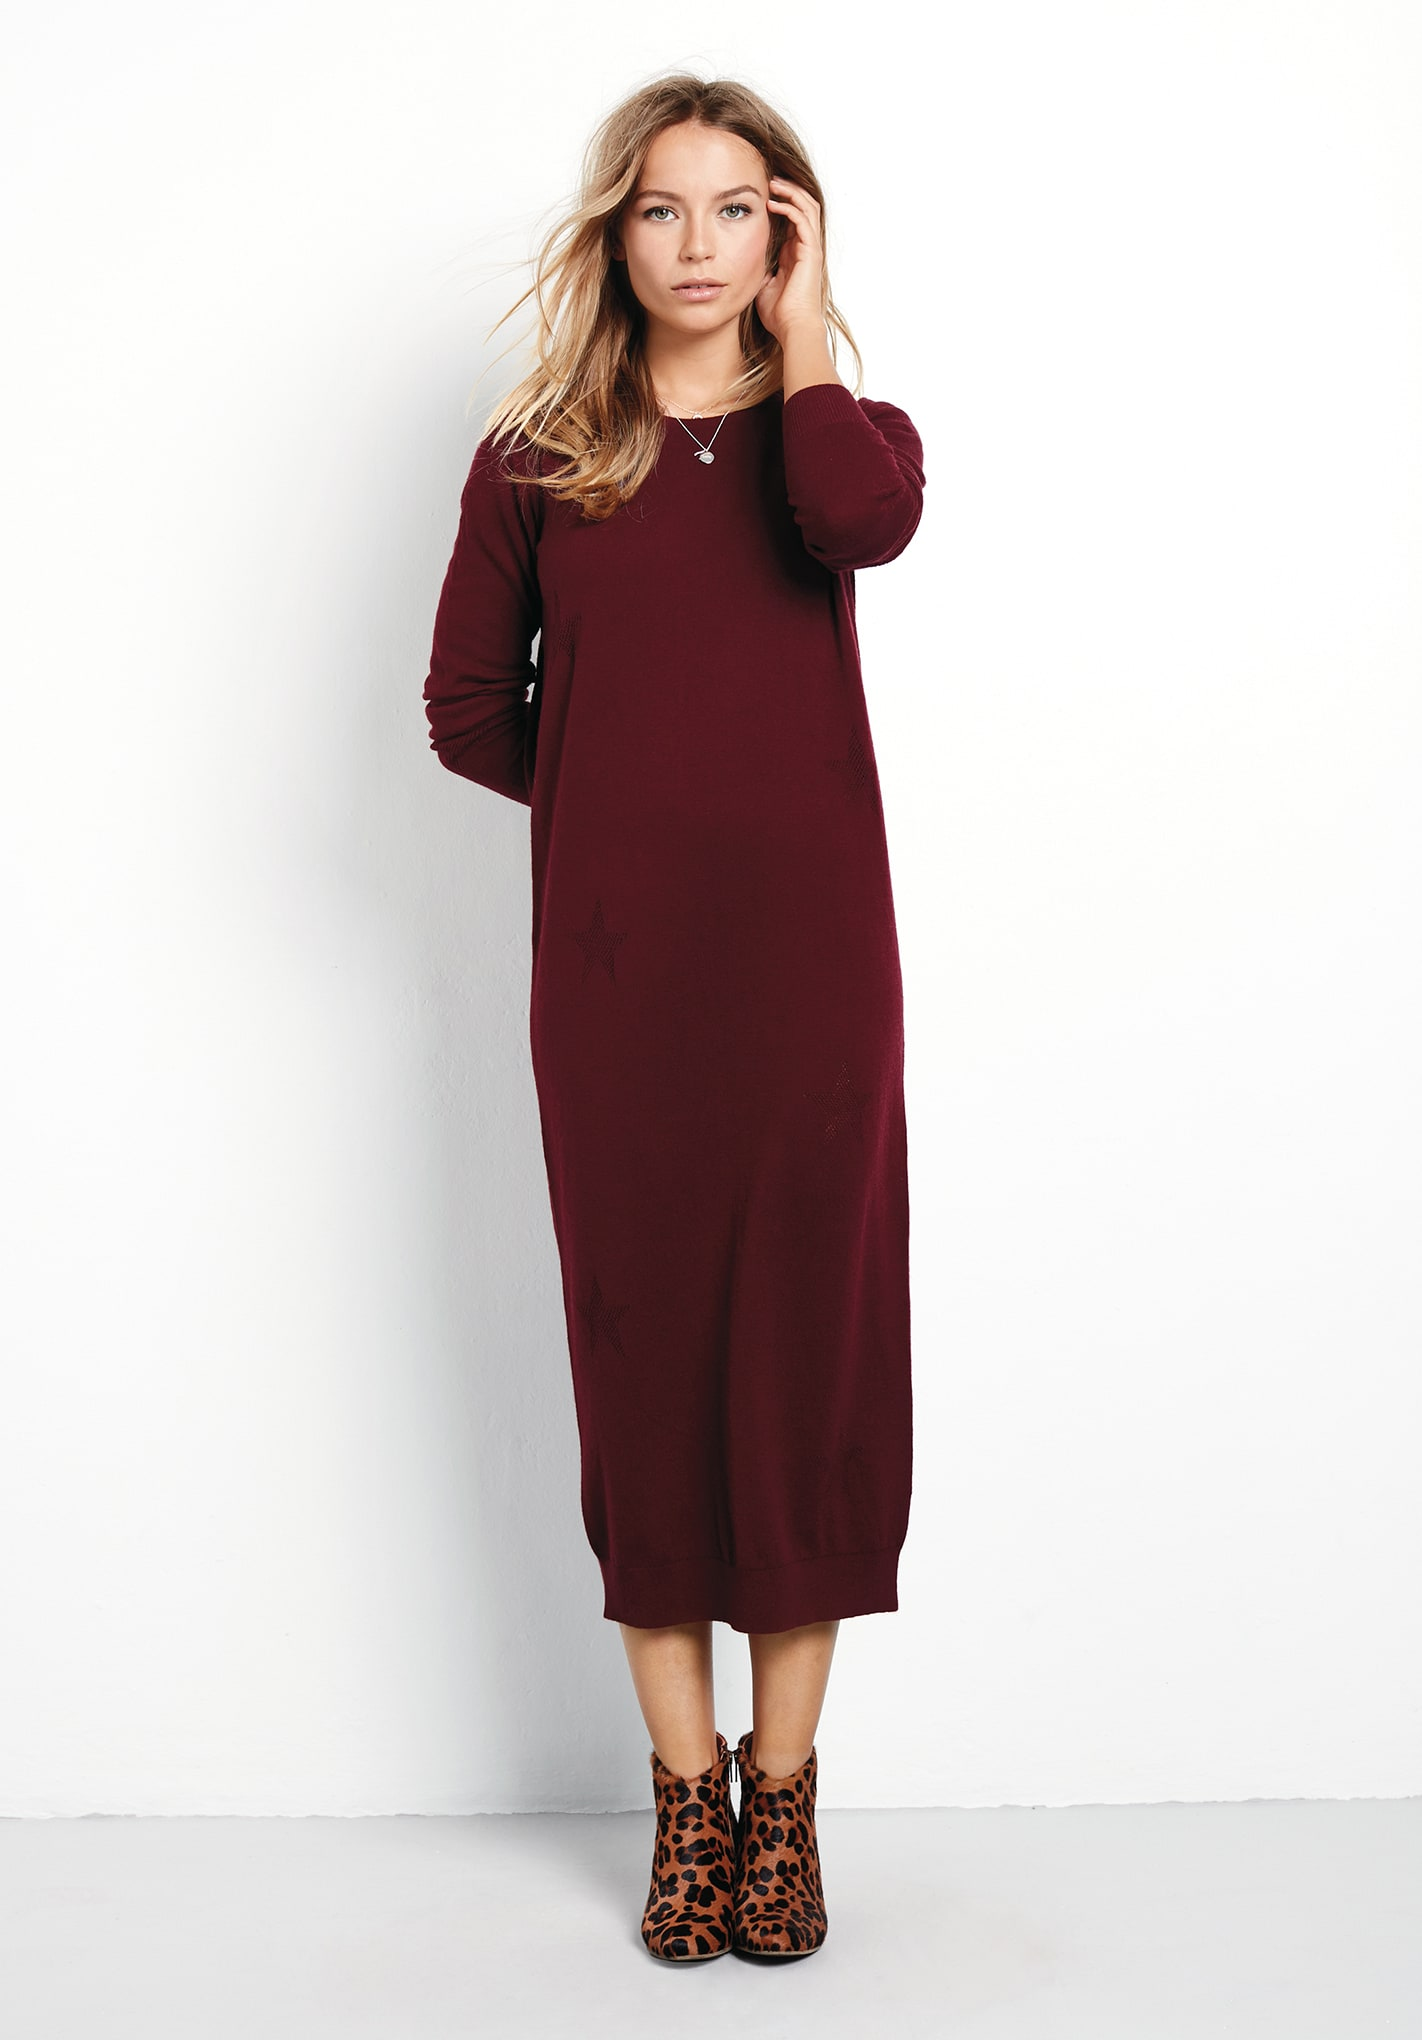 A knit midi dress in soft, organic pima cotton with a touch of spandex for a hint of stretch, and an elastic waist for blouson drape. An always-stylish midi length is all the more flattering with dramatic side slits.